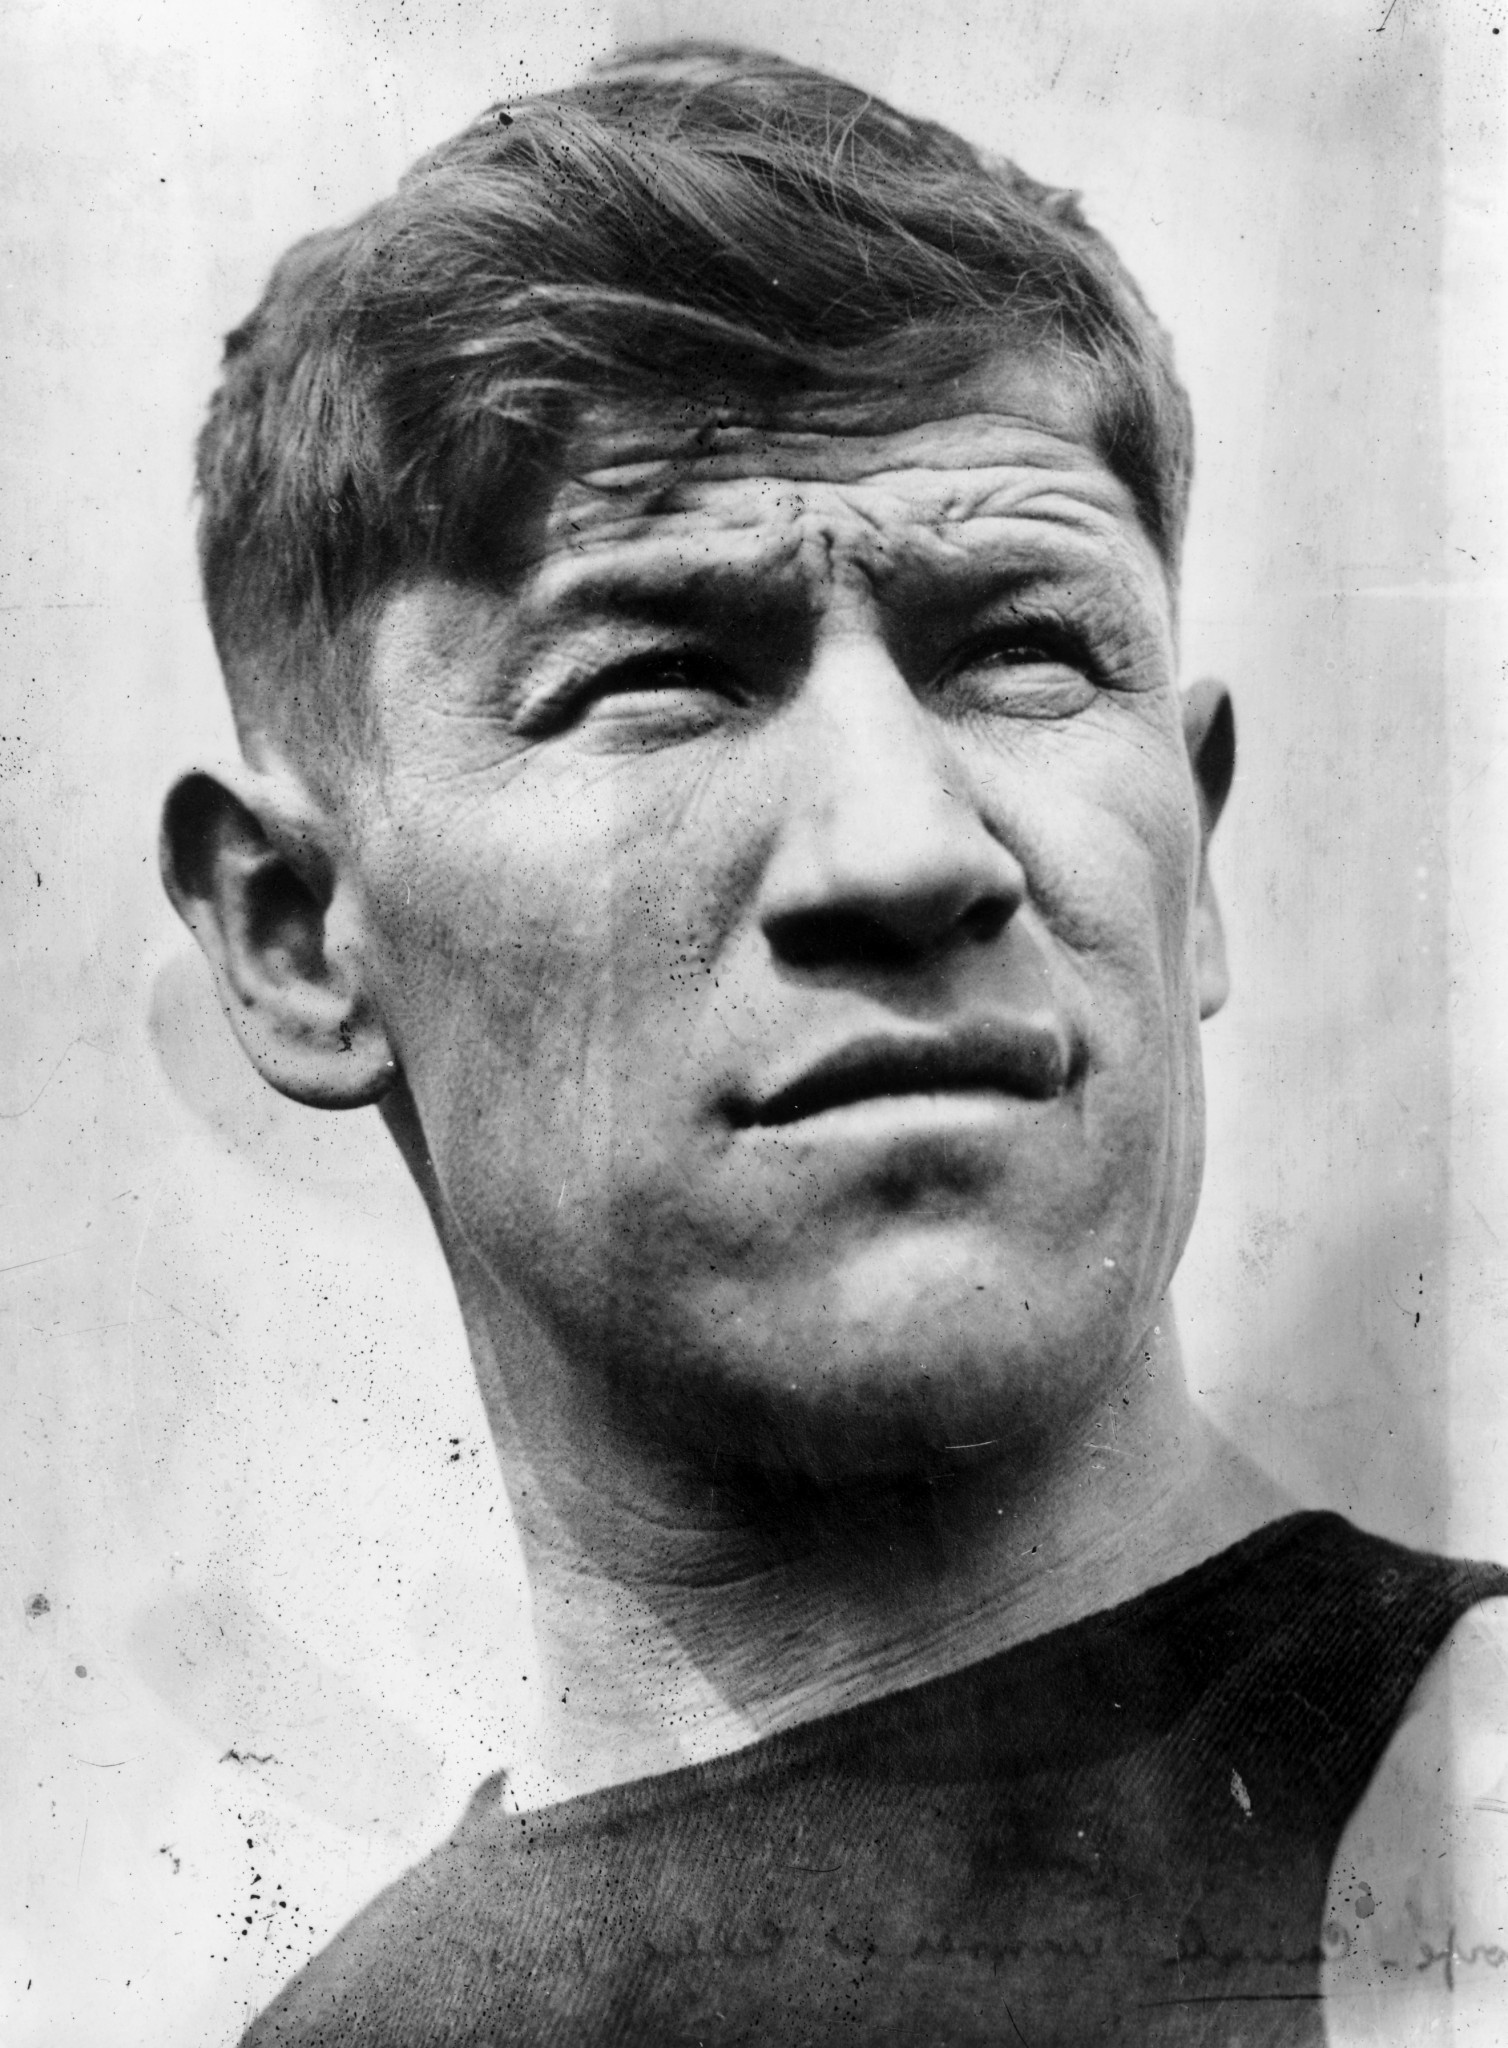 A campaign to recognise Jim Thorpe as the sole decathlon and pentathlon champion from Stockholm 1912 has been launched ©Getty Images